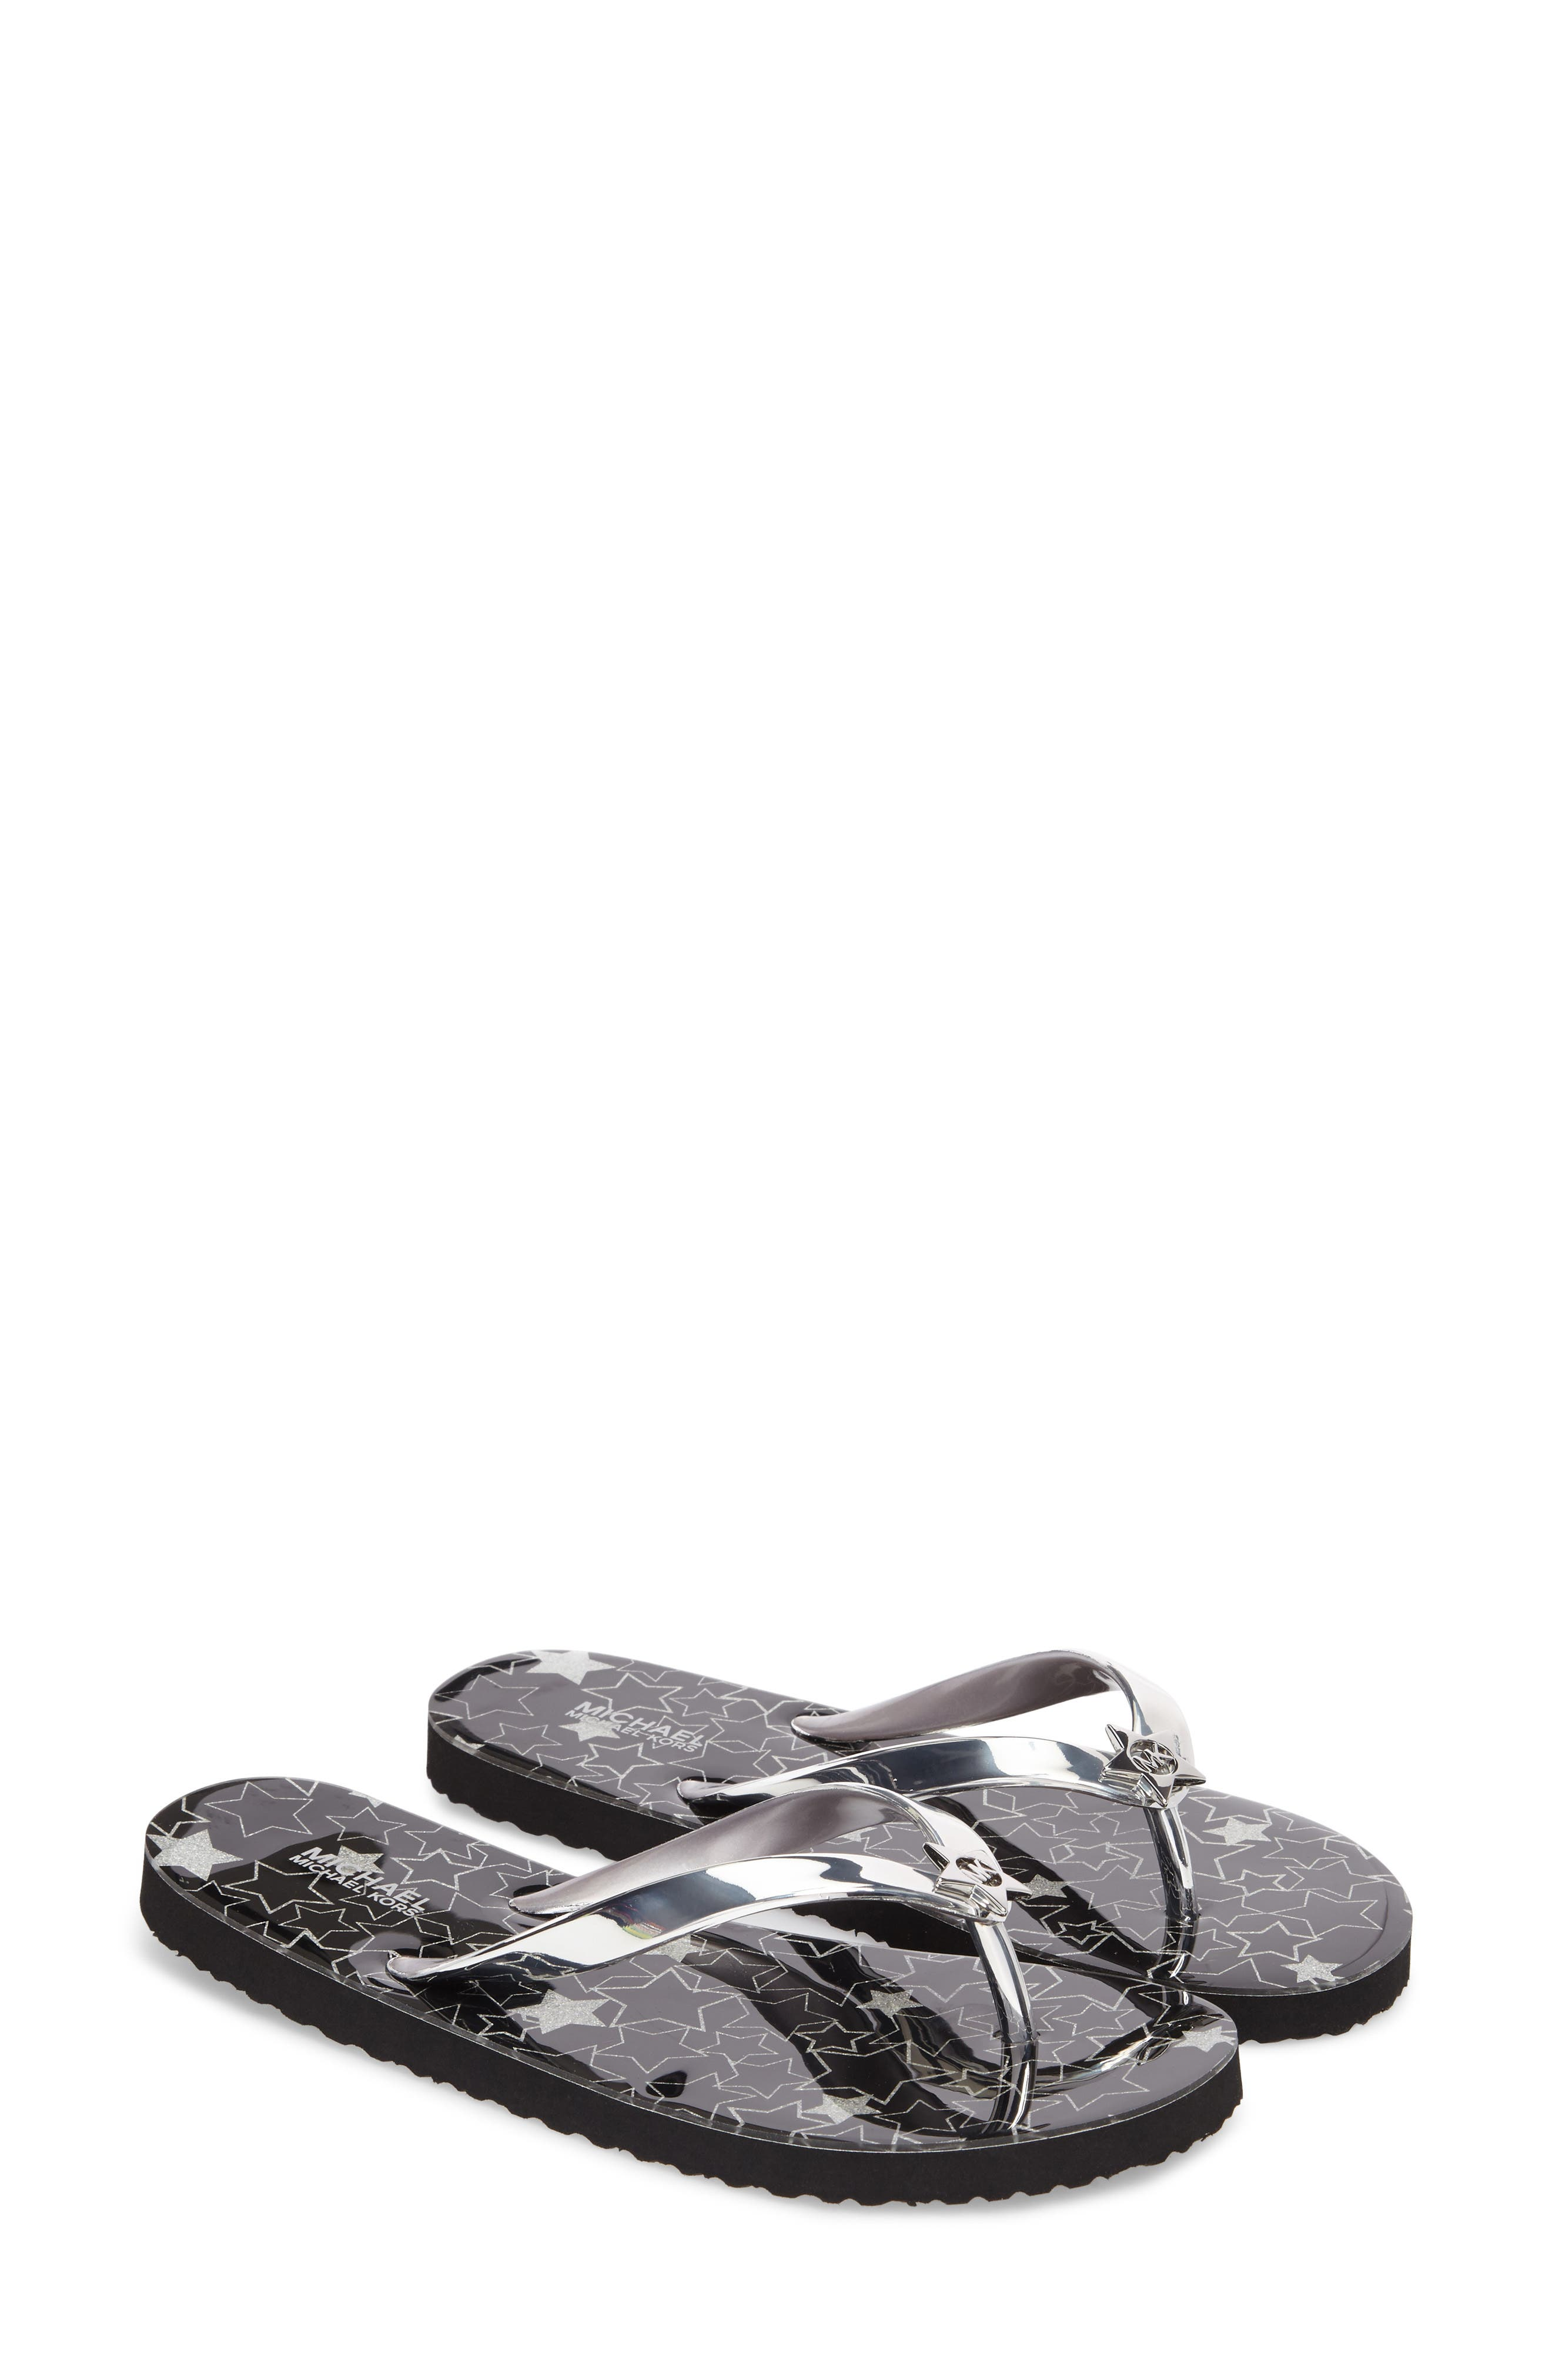 MK Star Flip Flop,                         Main,                         color,